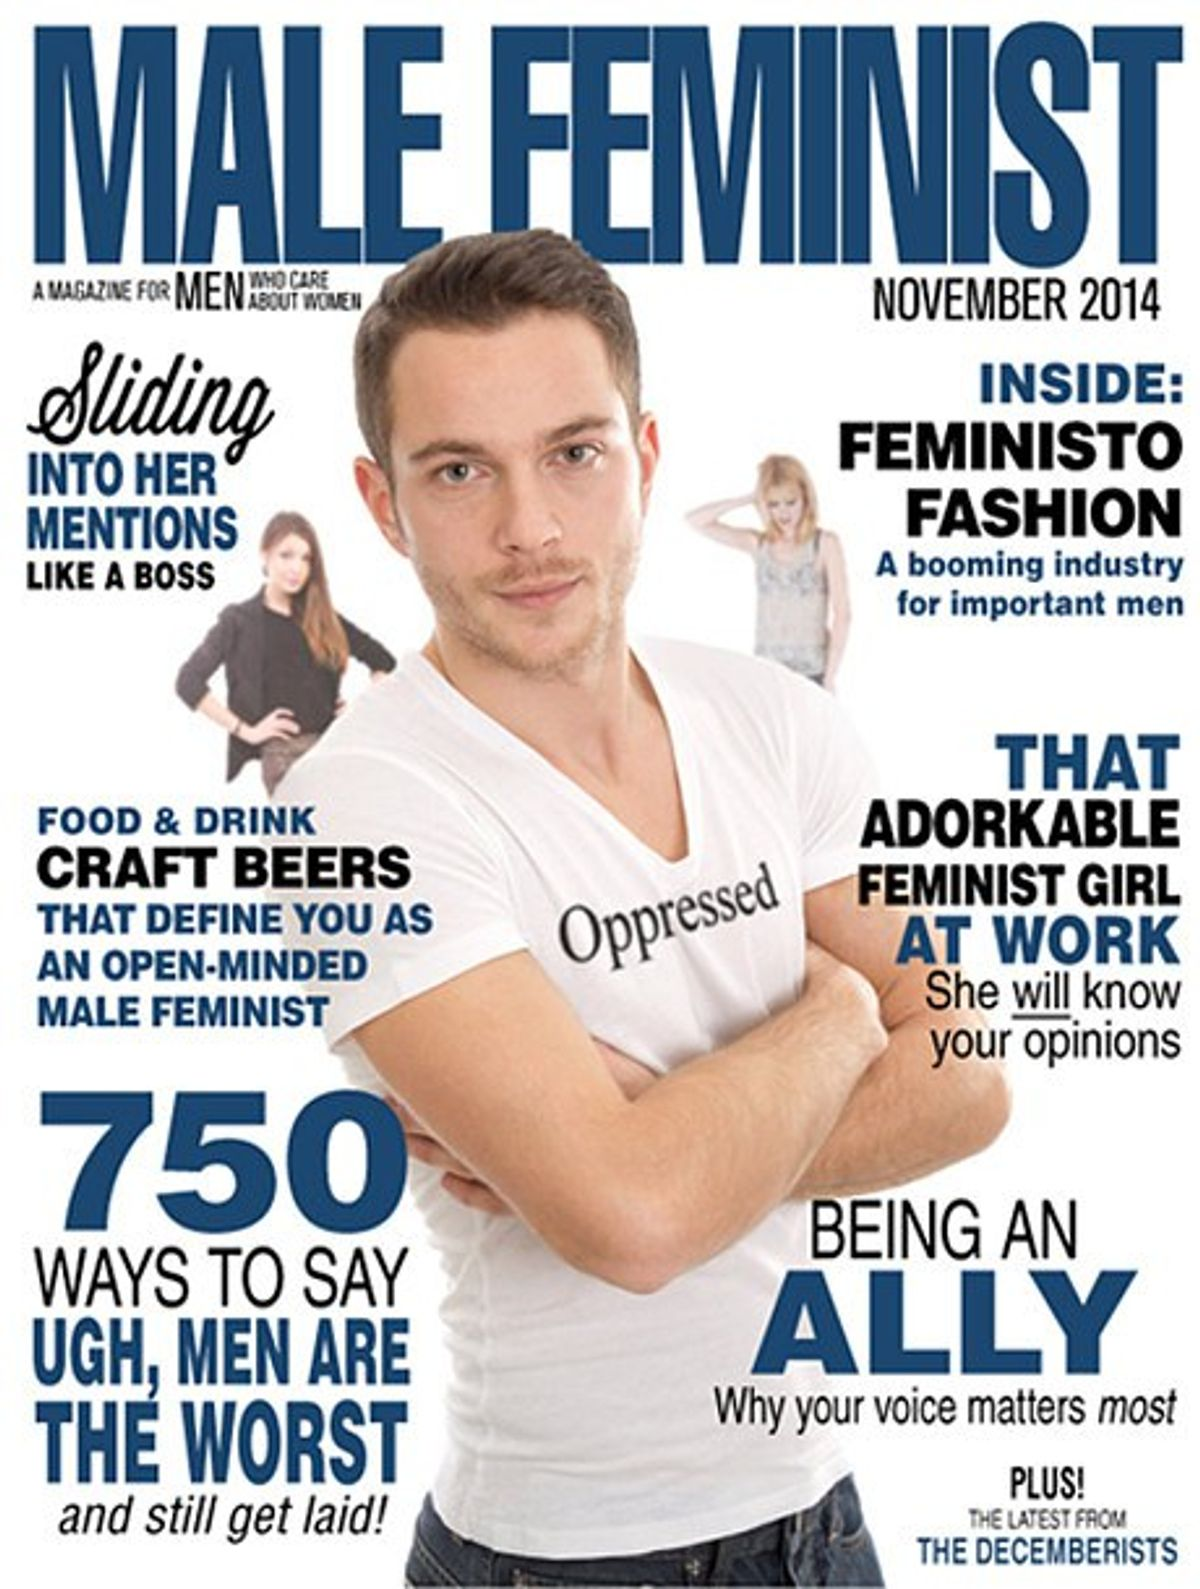 There Is No Such Thing As A Male Feminist